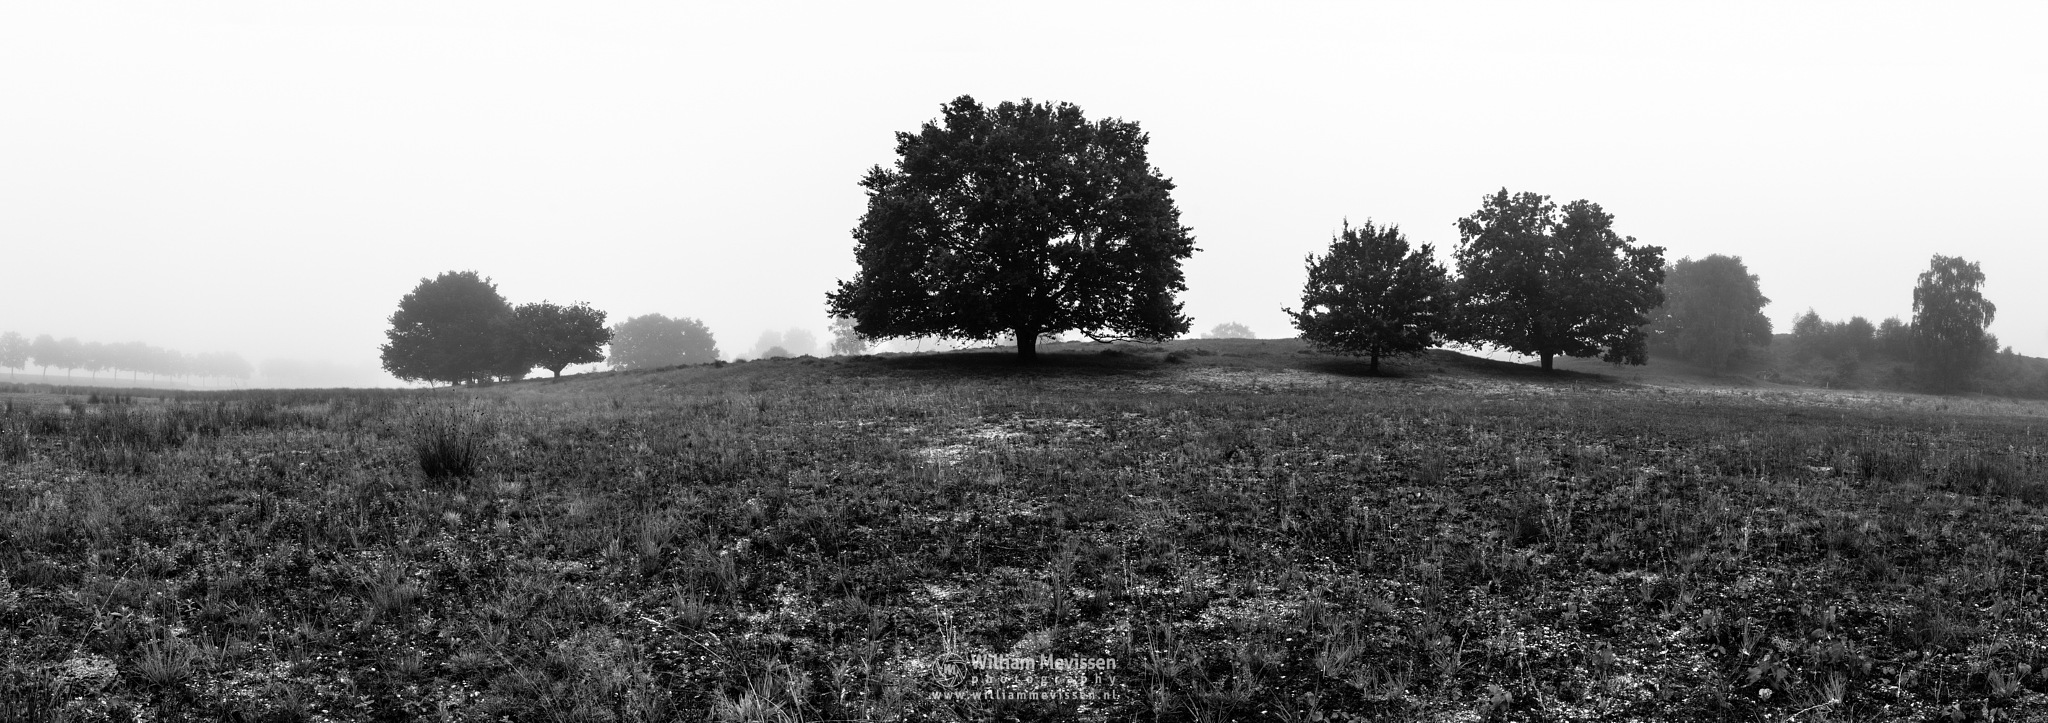 Panorama Misty Silhouettes by William Mevissen